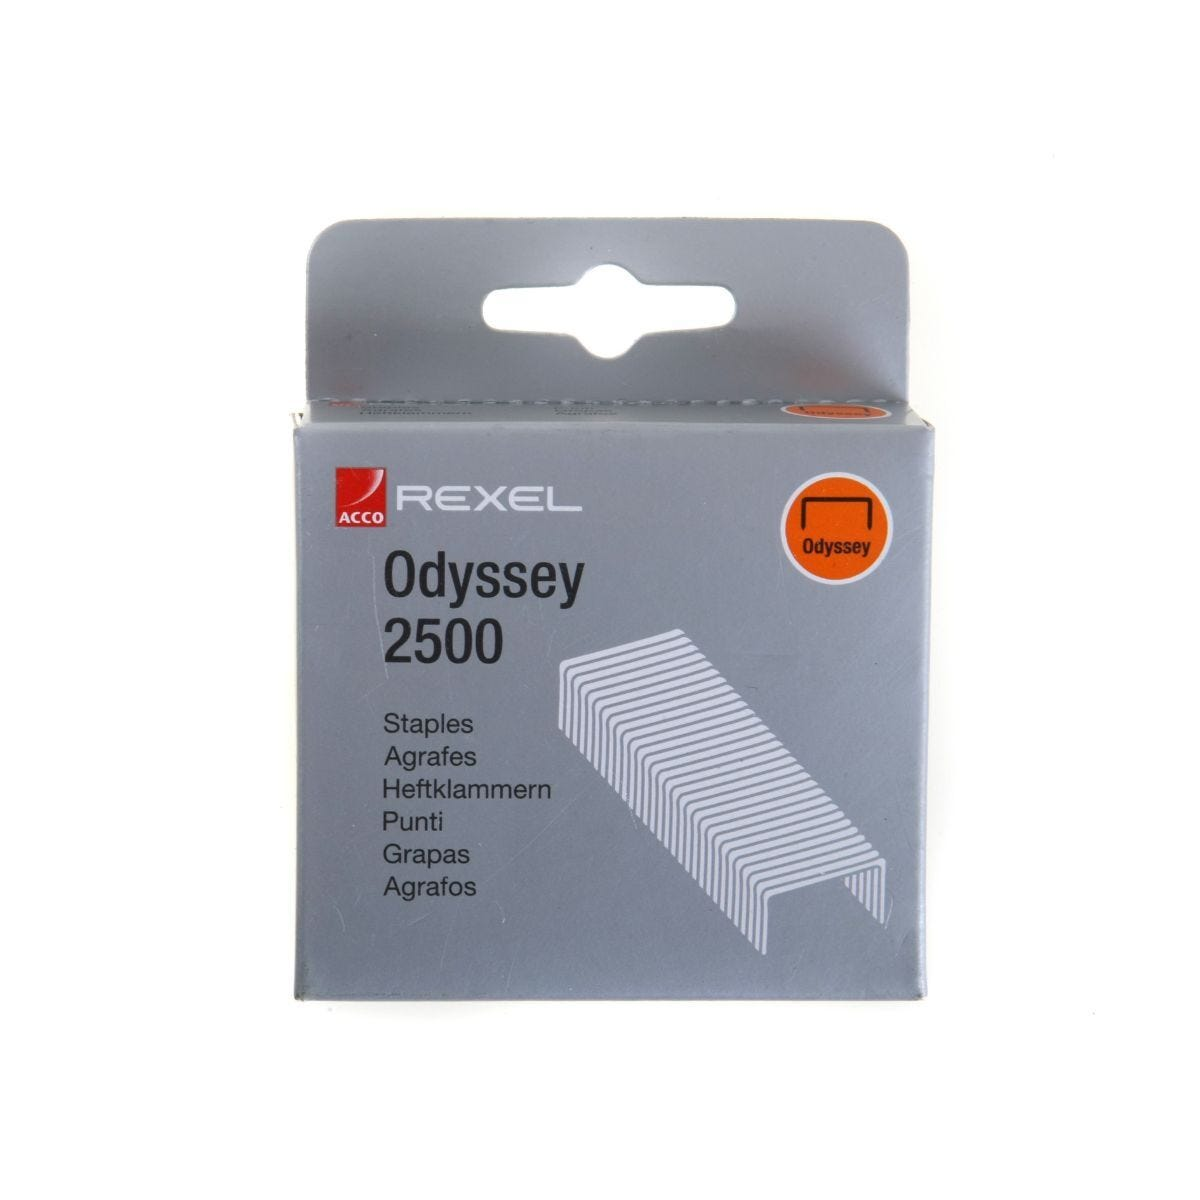 Rexel Odyssey Staples 13/9mm Pack of 2500